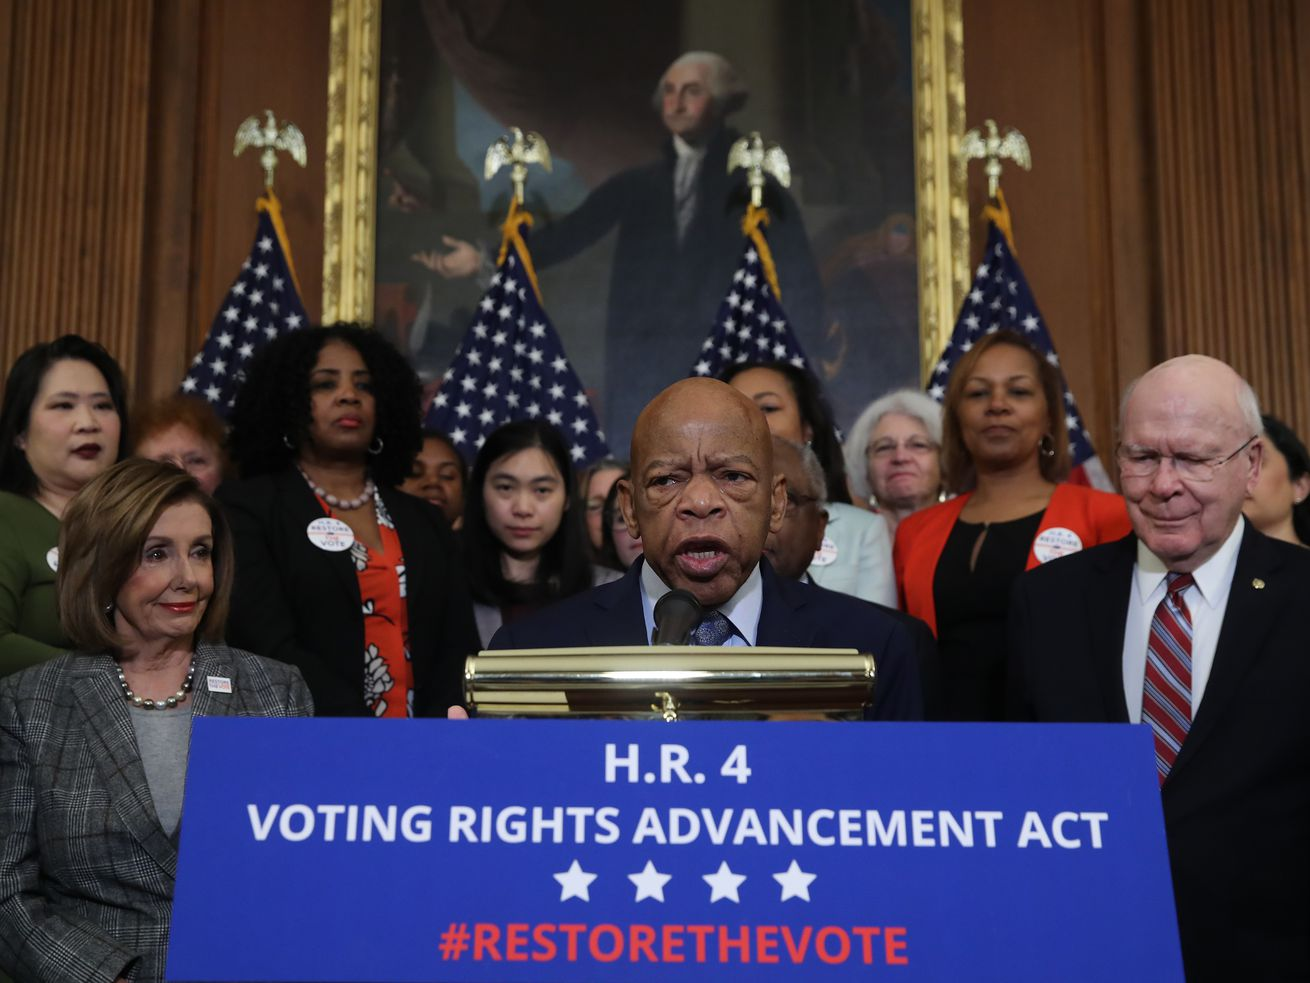 """Lewis speaks surrounded by US flags and Democratic lawmakers at a podium with a sign that reads """"HR 4 Voting Rights Advanced Act."""""""